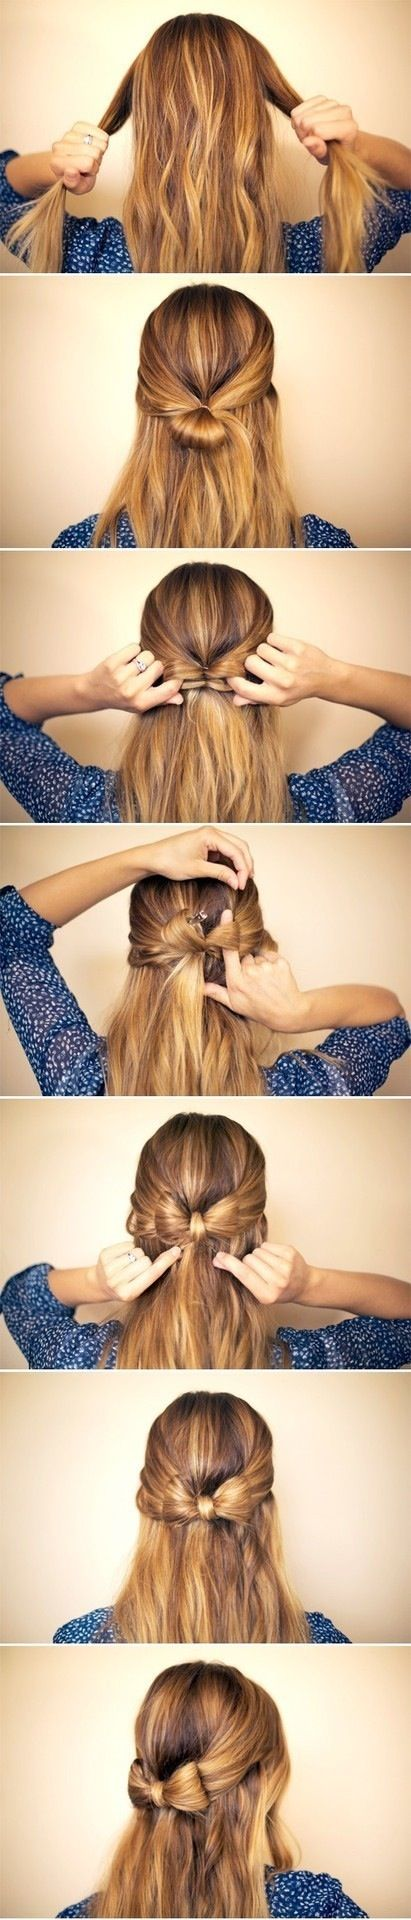 1000 Images About Coiffure On Pinterest Coiffure Chignon